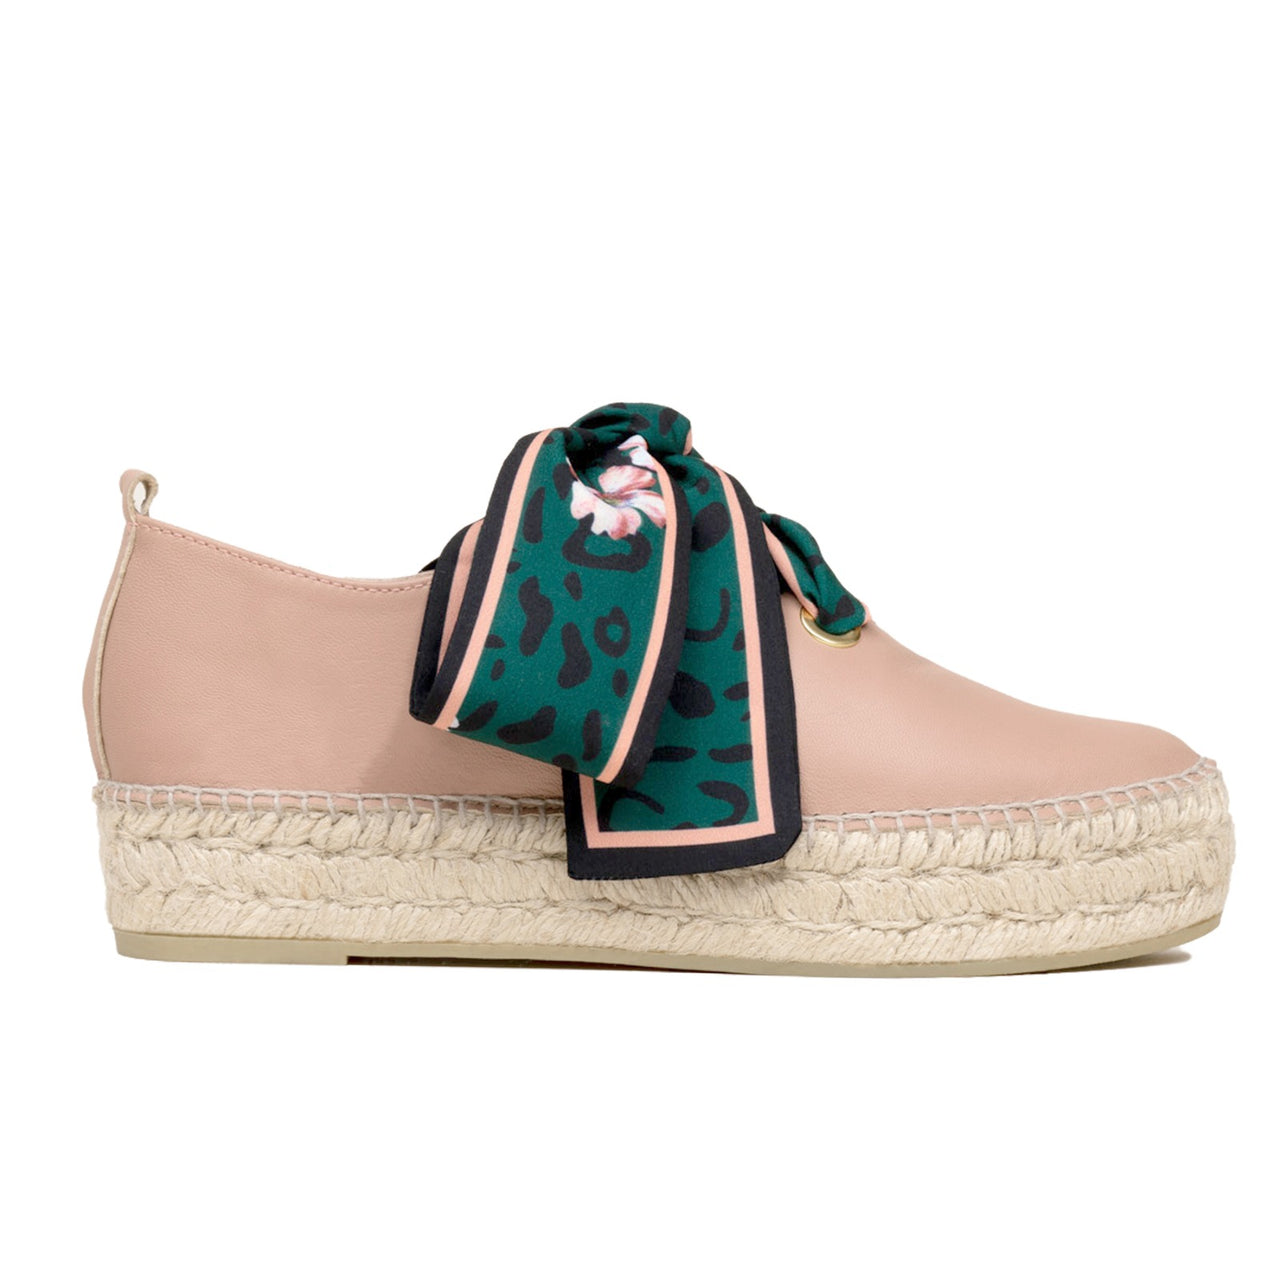 RUNNI Blush espadrilles - Badt and Co - singapore